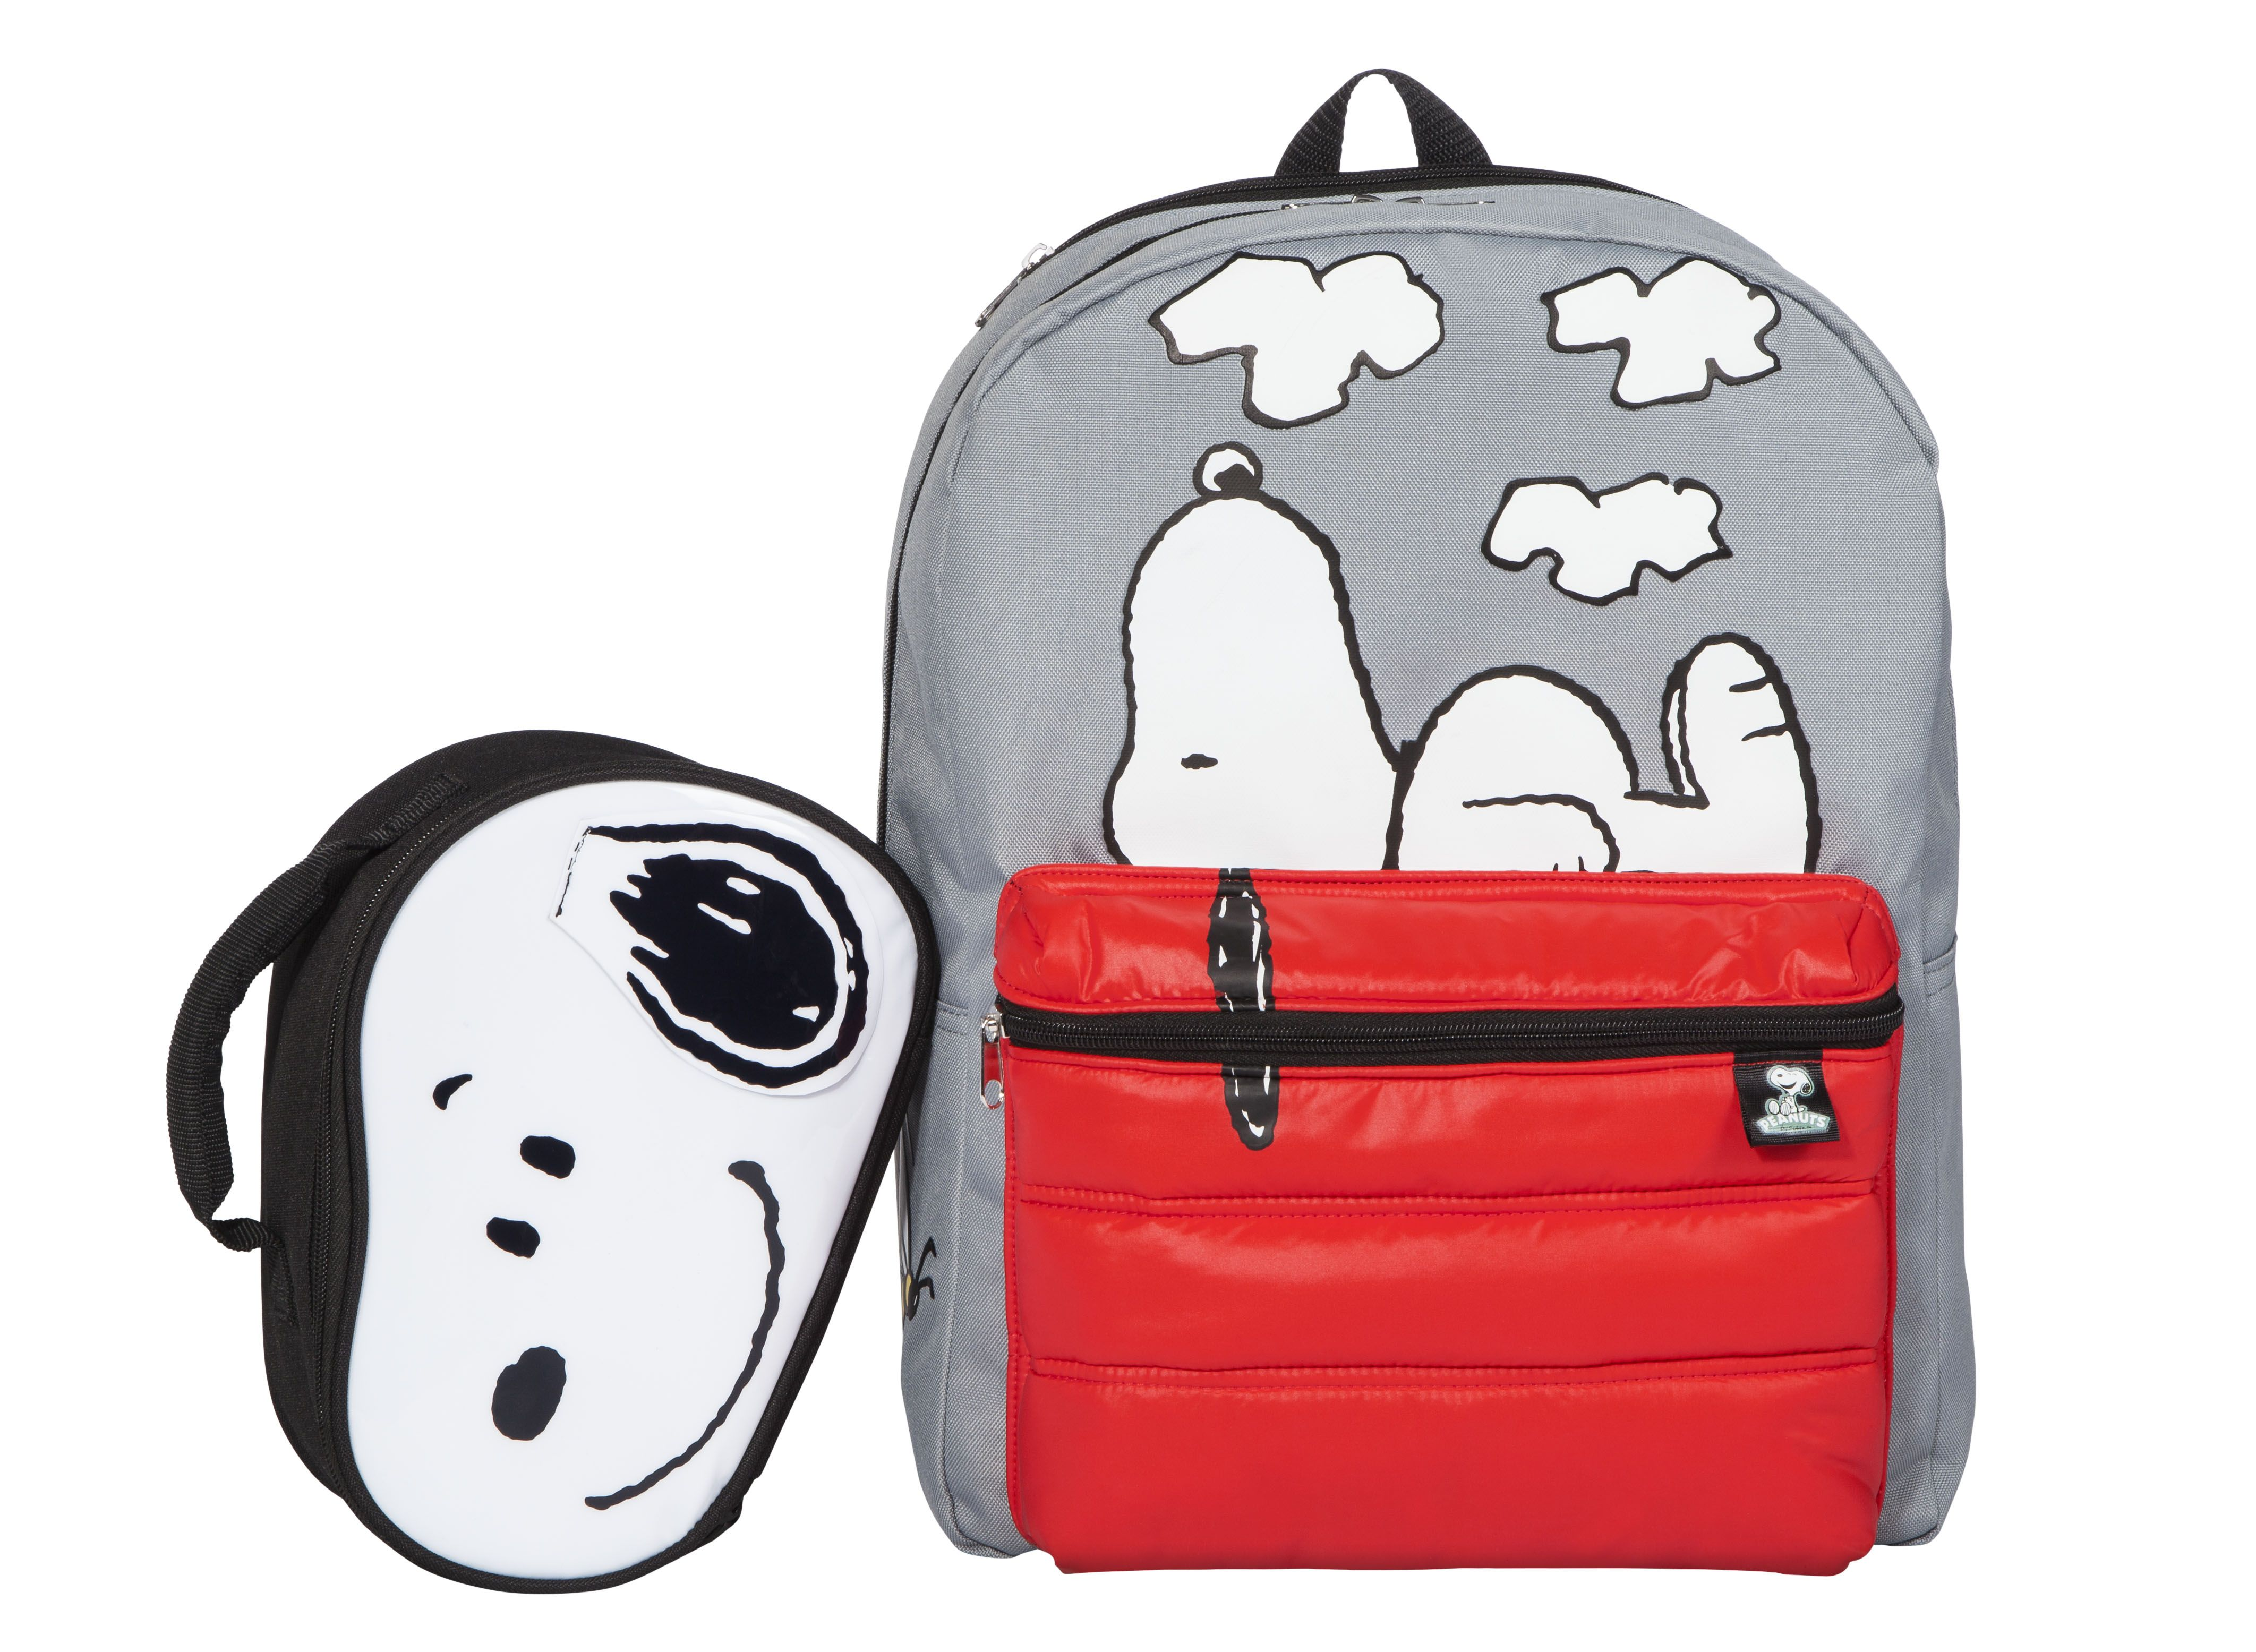 Pair Up Target S Snoopy Lunch Bag 9 99 And The Snoopy